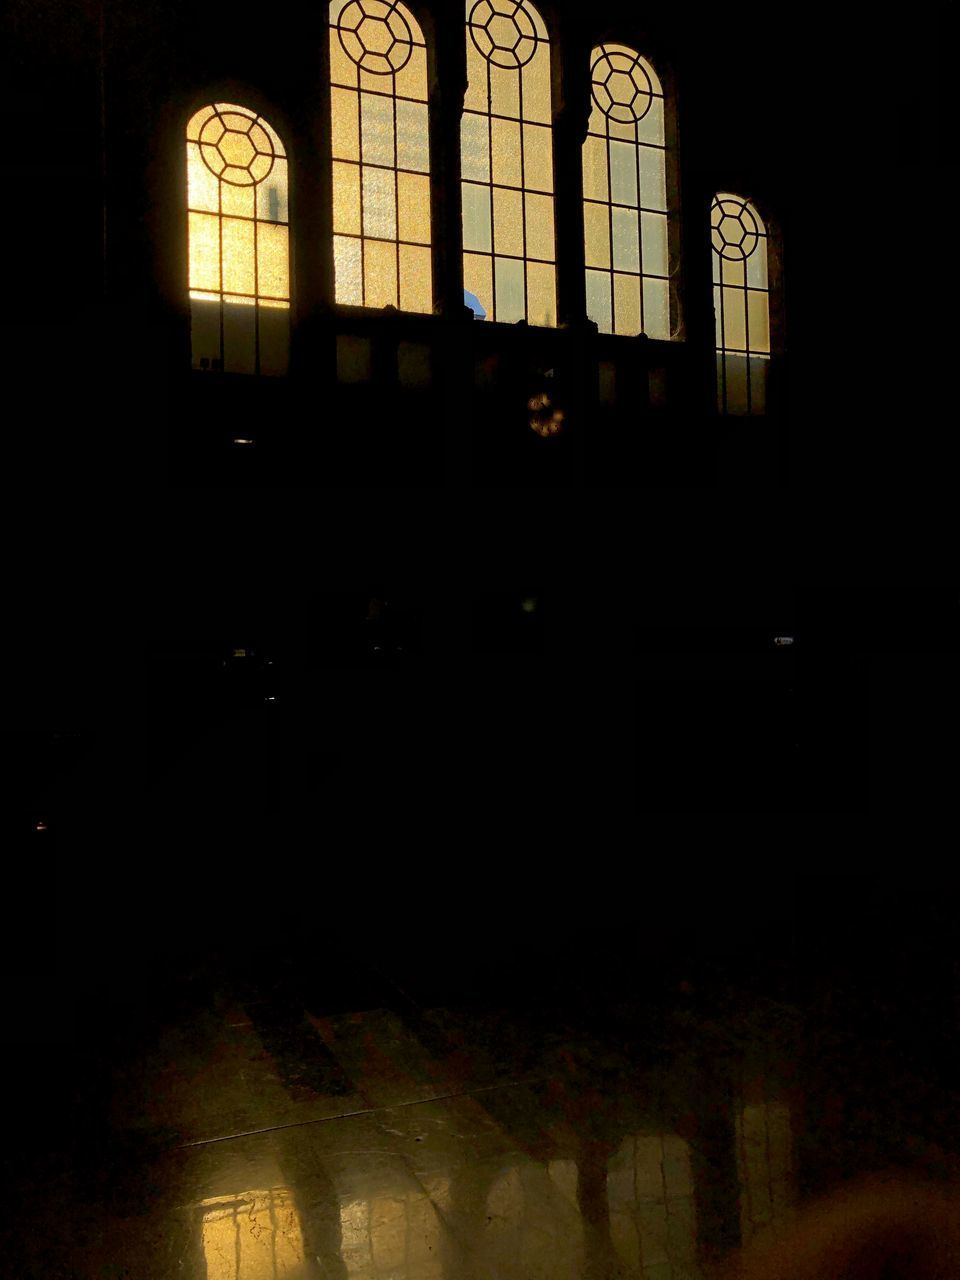 built structure, window, dark, architecture, night, indoors, no people, silhouette, building, illuminated, nature, shadow, glass, spirituality, religion, pattern, place of worship